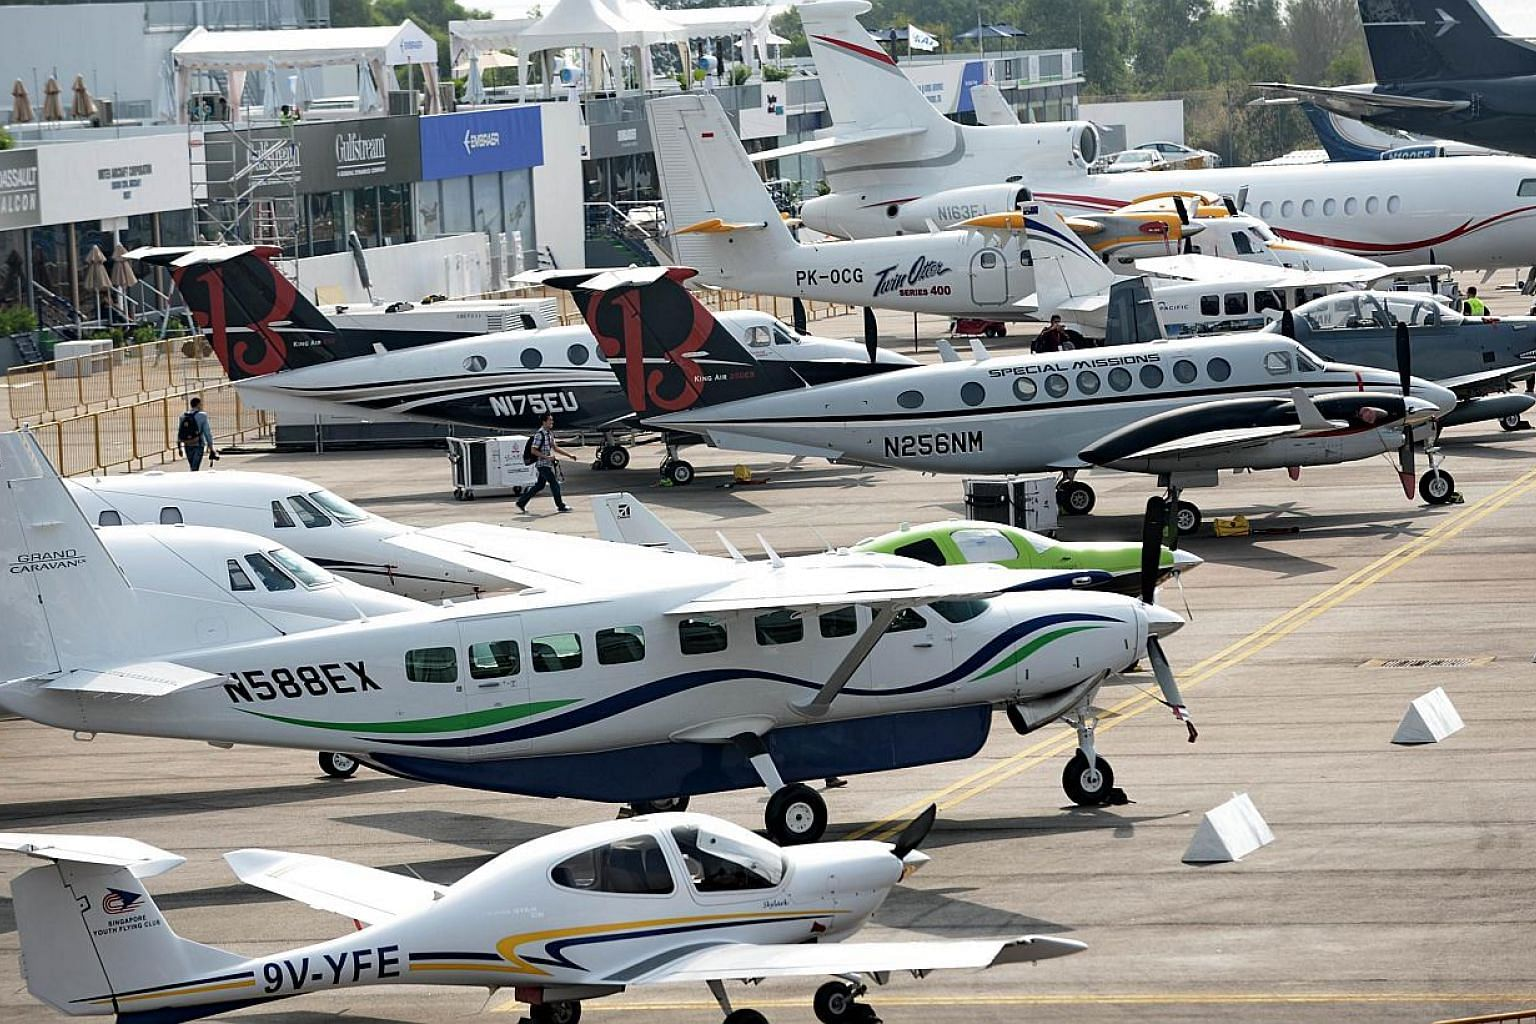 A static display of private aircraft at the Changi Exhibition Centre ahead of the Singapore Airshow, which opens tomorrow. About 90 aircraft, including the Airbus 350 and Boeing 787 Dreamliner, will be on display.